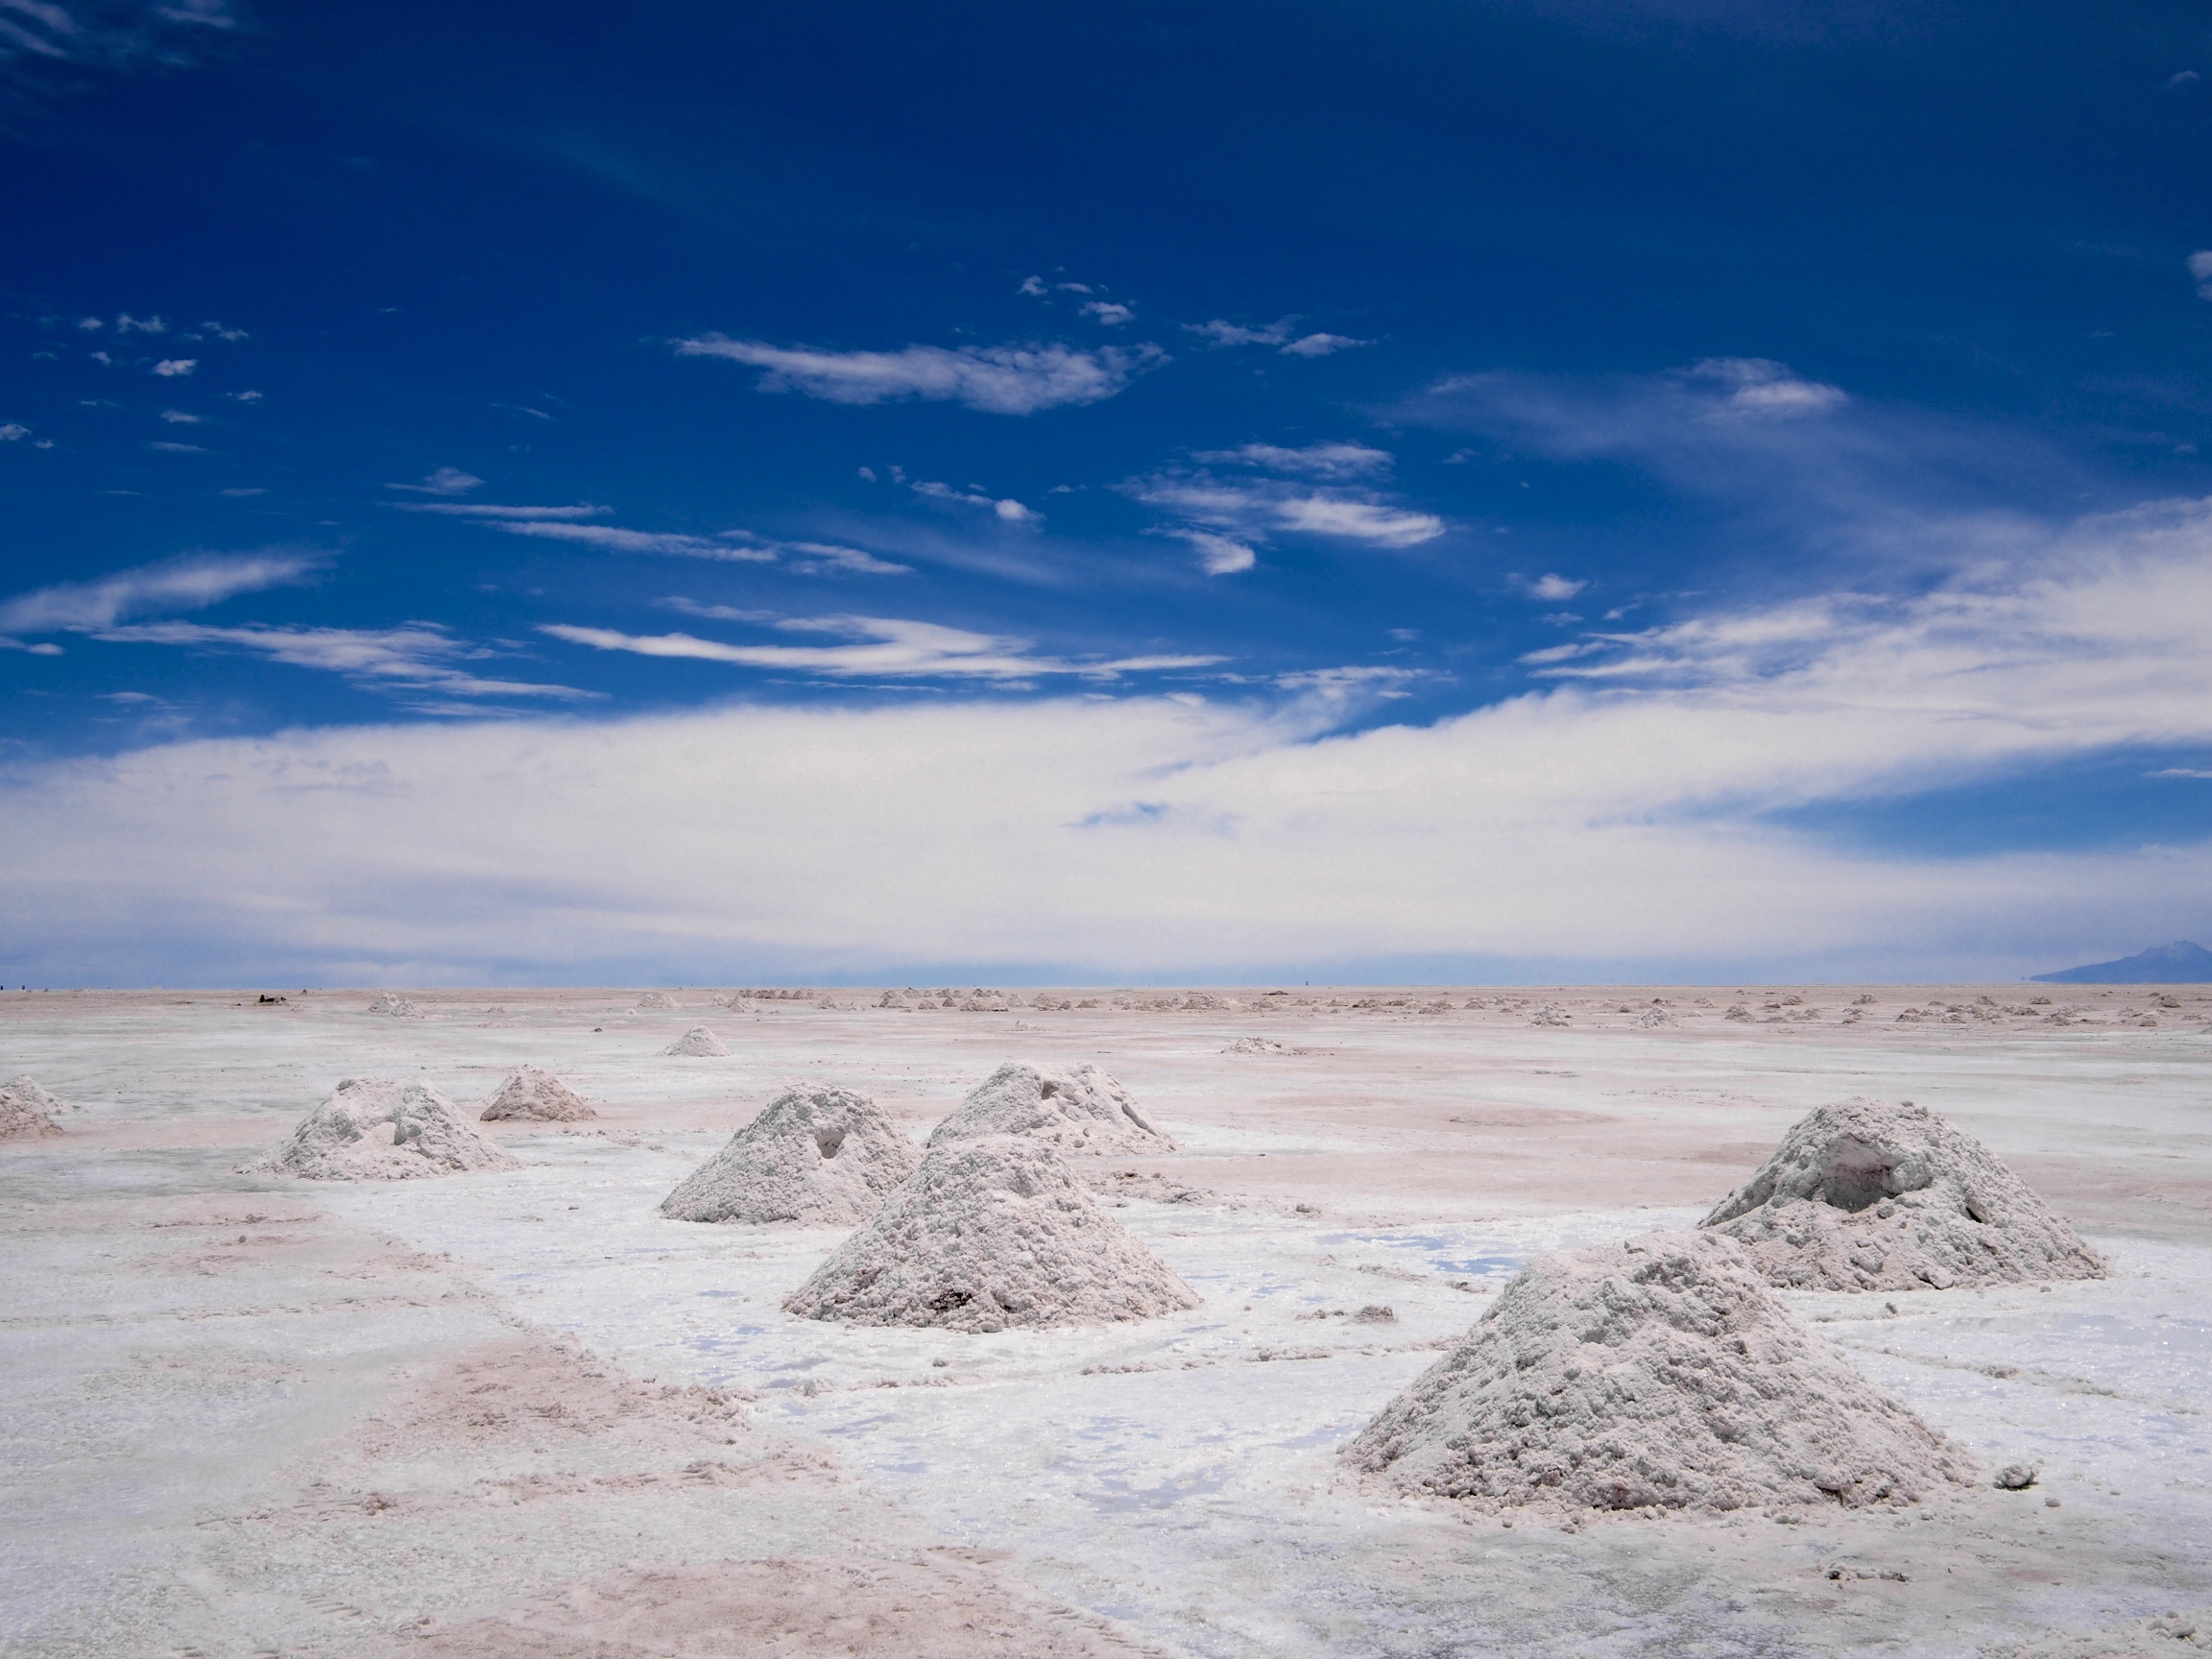 Salt is scraped off and piled into mounds ready to be transported and processed in Colchani, Bolivia